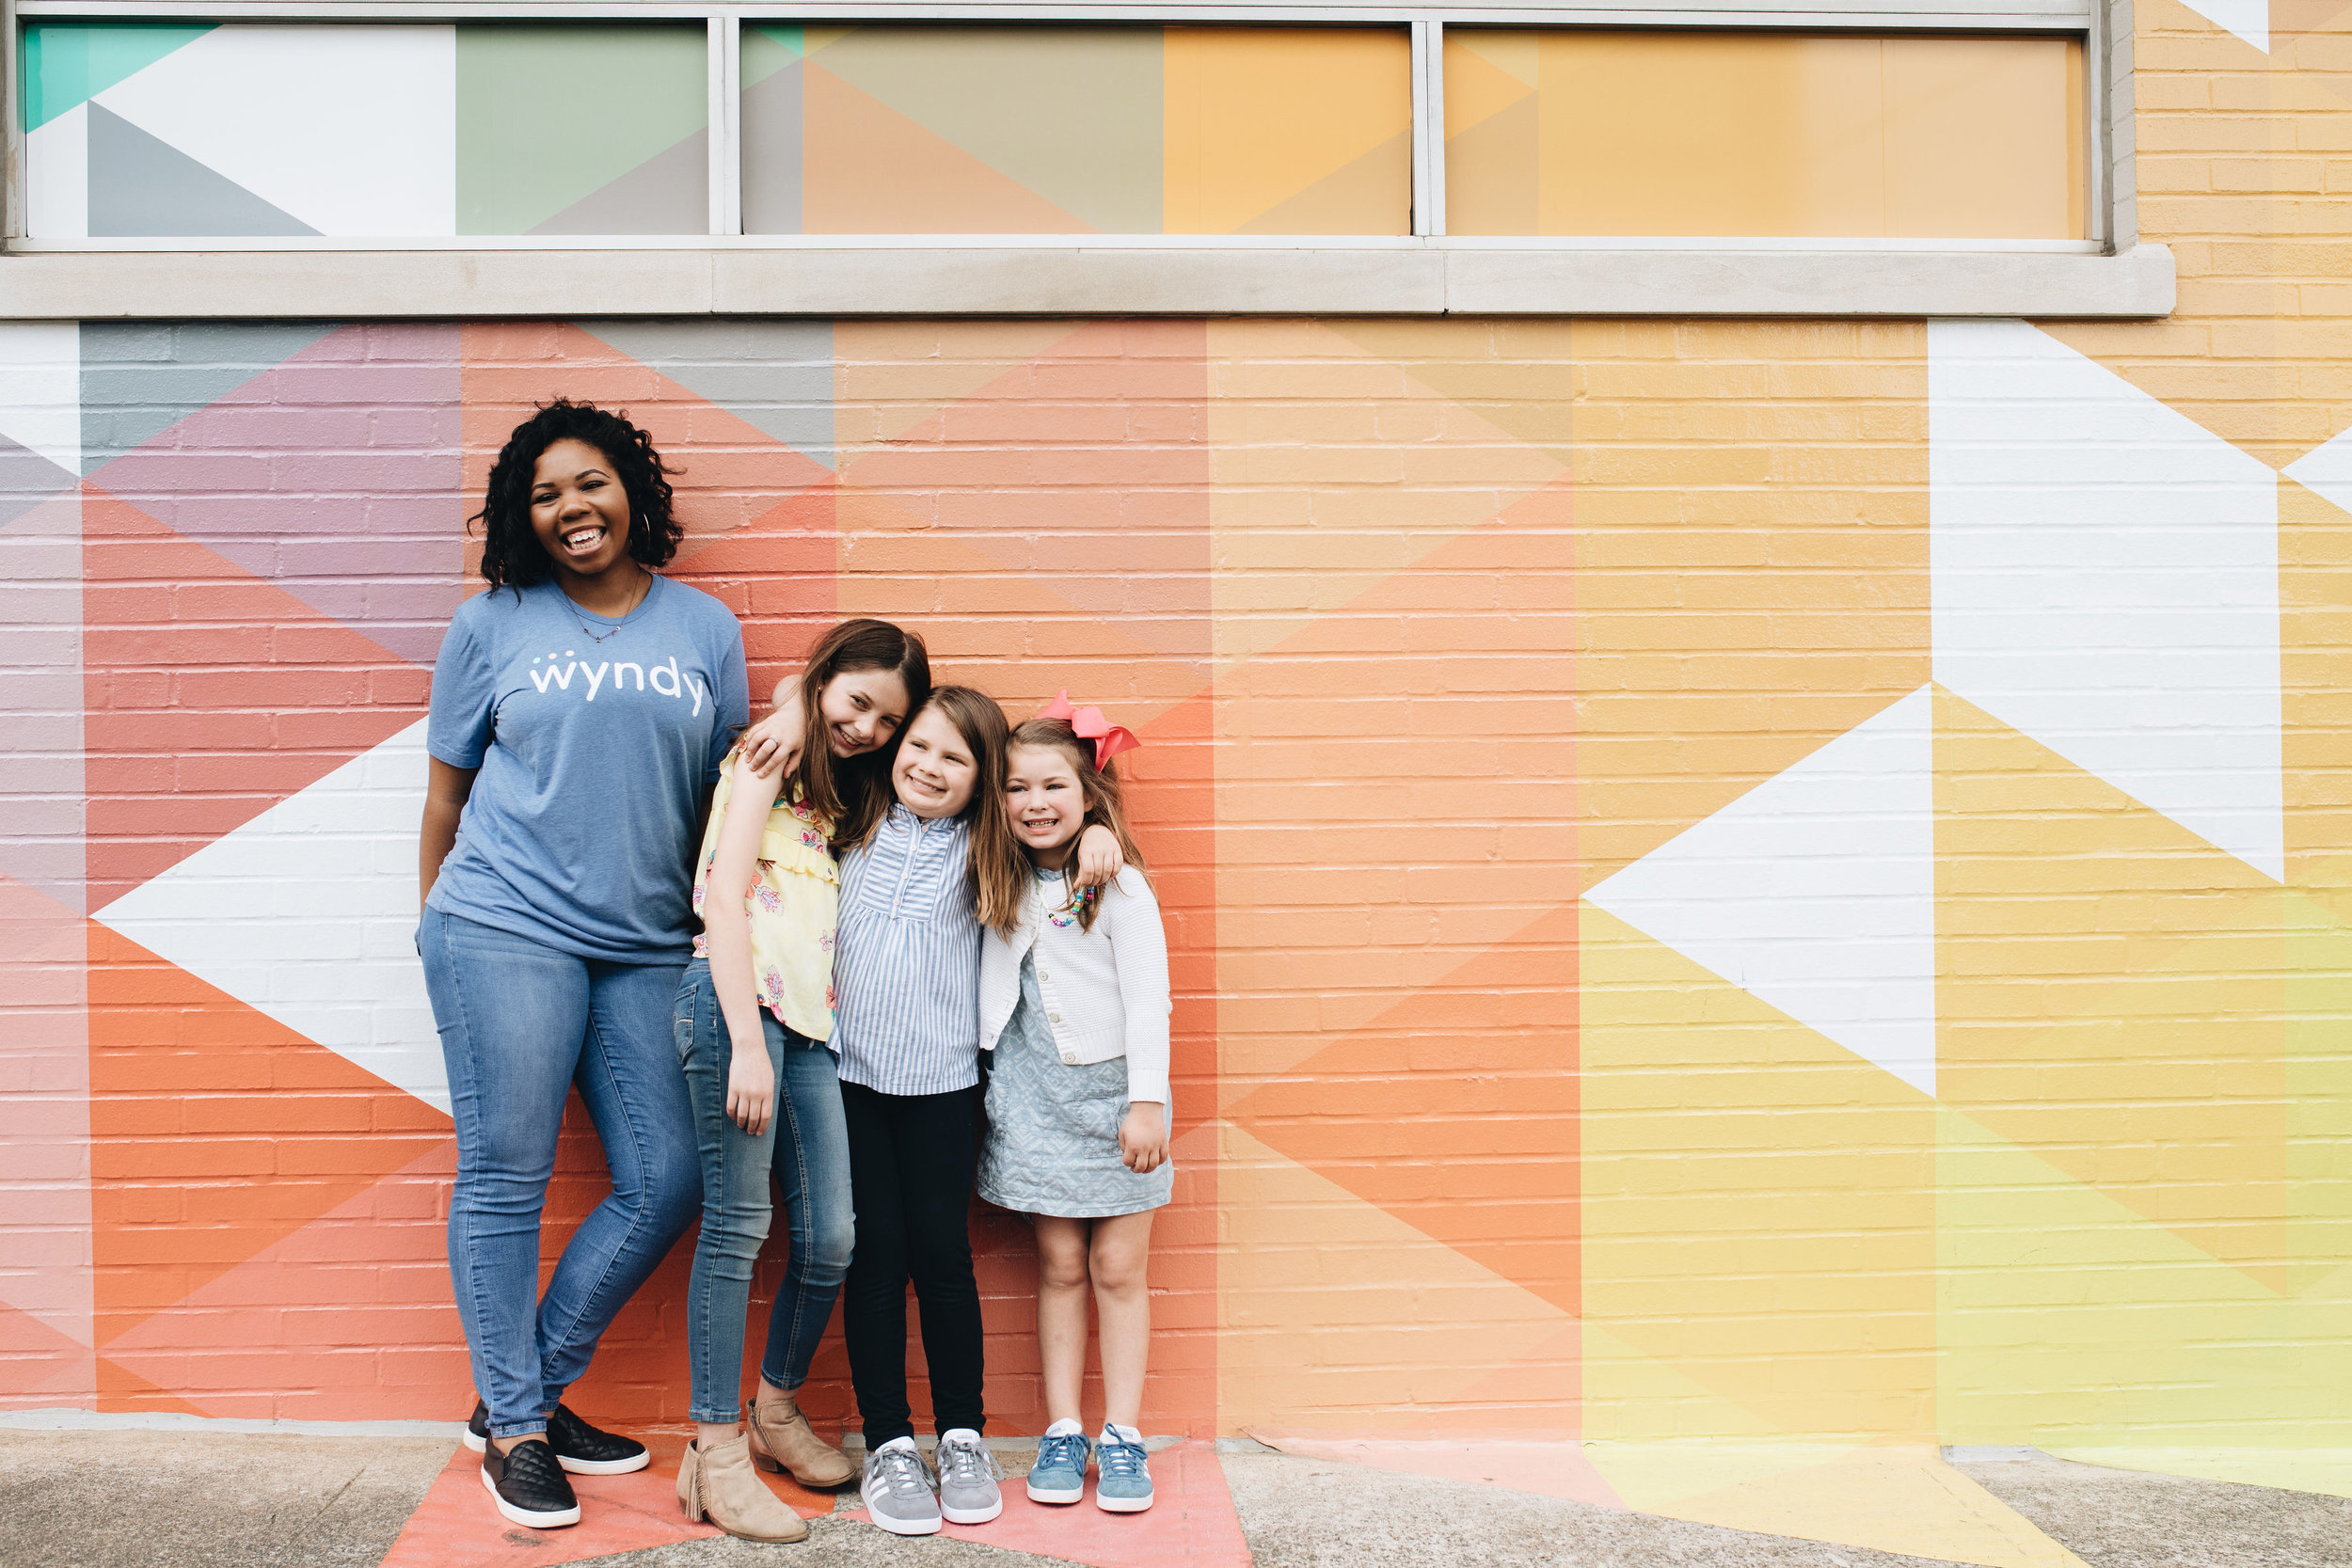 Wyndy makes it easy to get background-checked college babysitters in New Orleans. - More than 12,000 families in Atlanta, New Orleans, Nashville, Birmingham, and Memphis trust Wyndy.